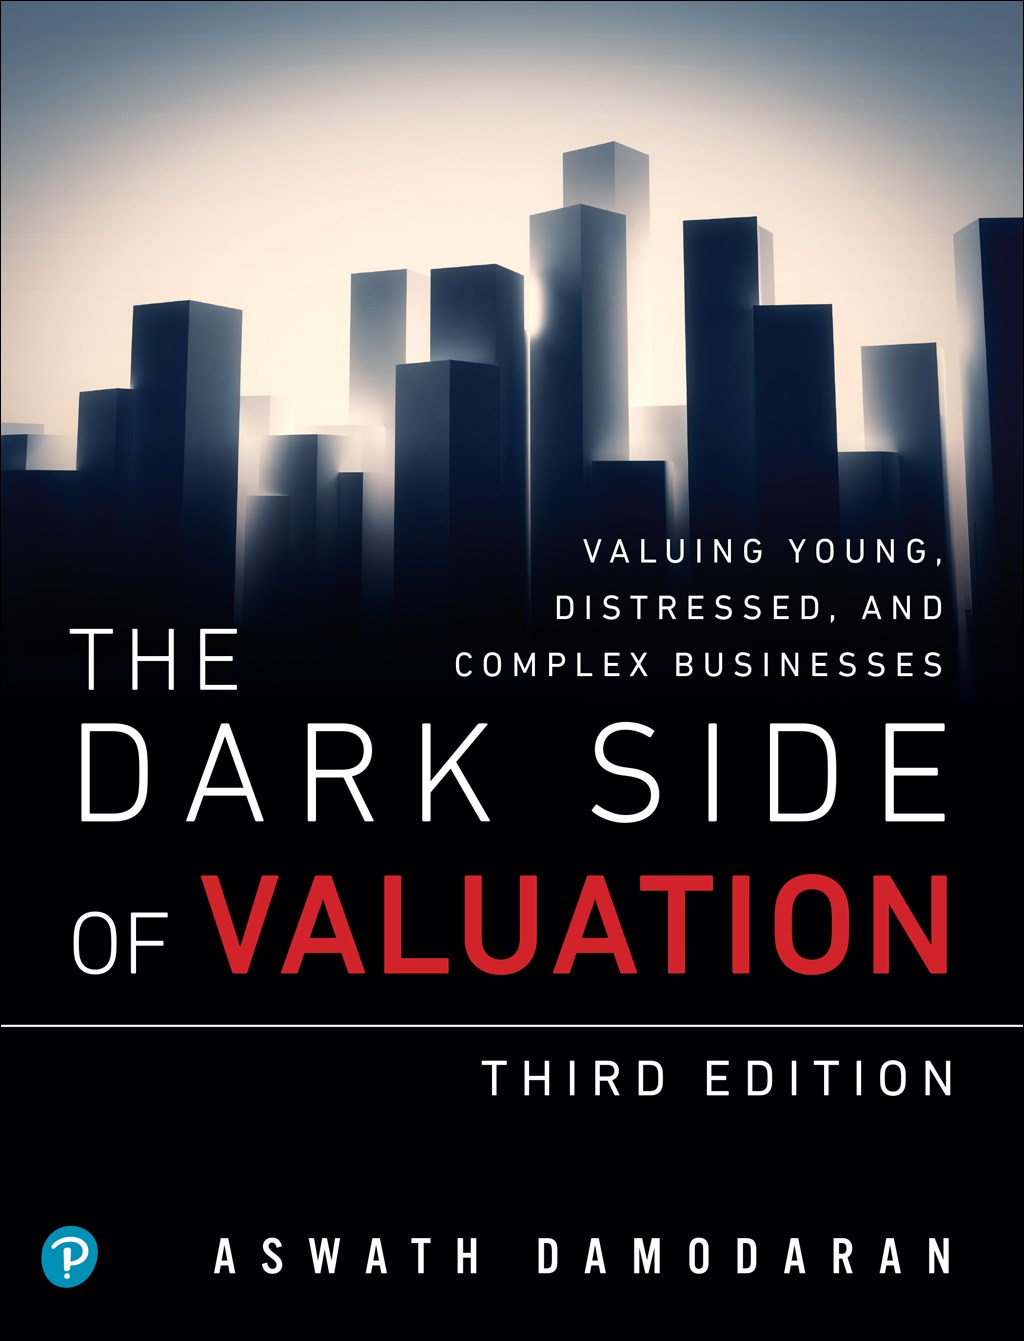 The Dark Side of Valuation, 3rd Edition